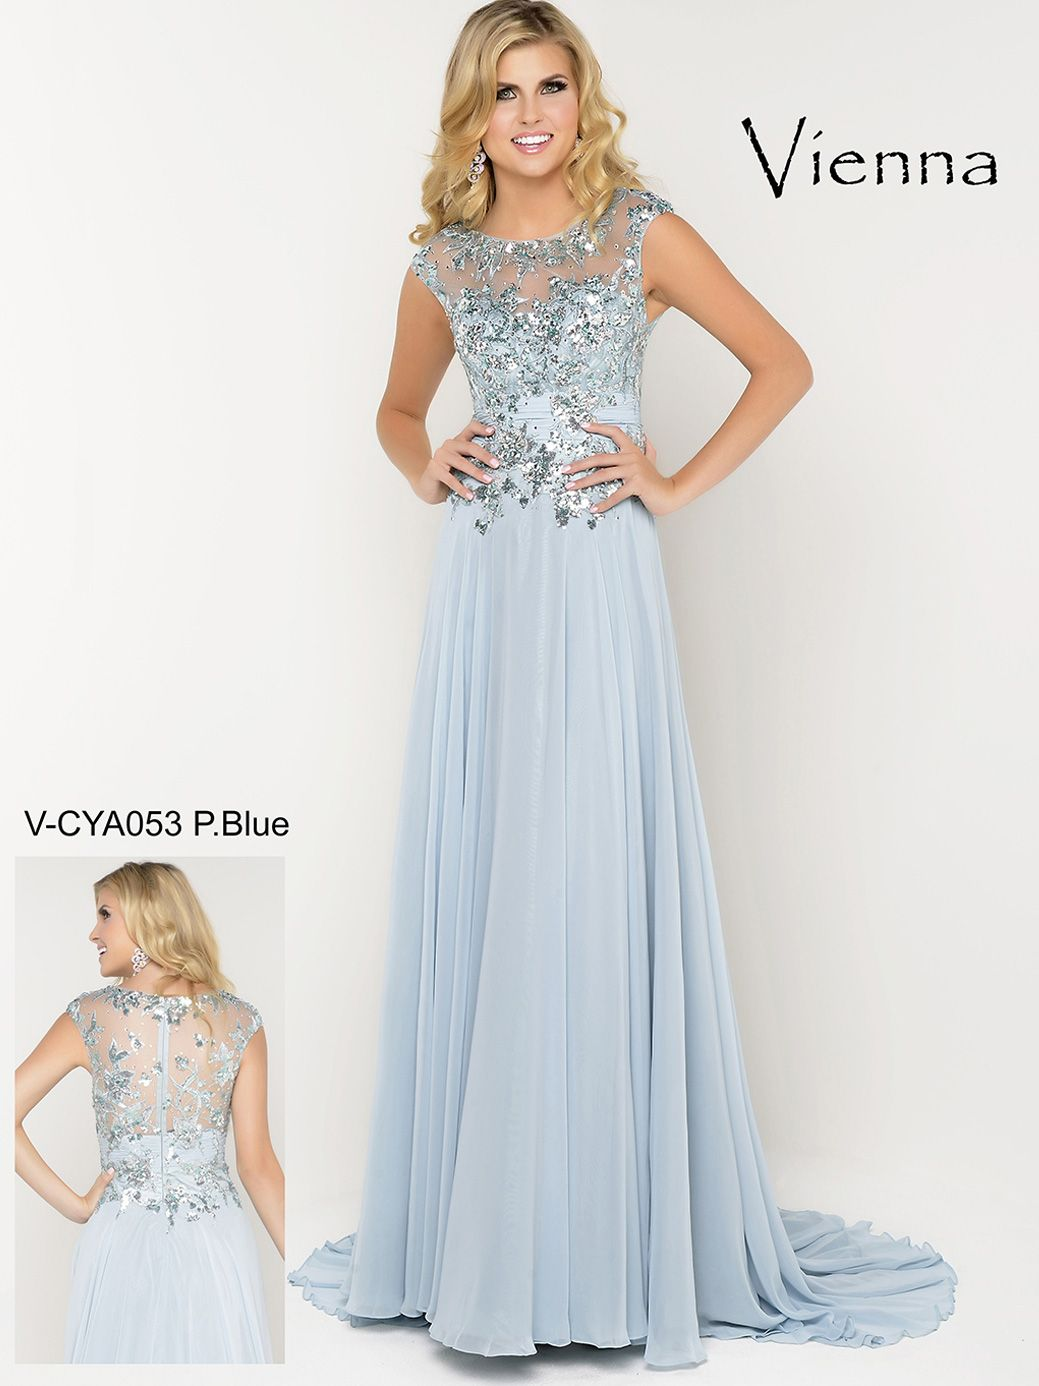 Elegance Has Never Looked Better Than This Striking Vienna Prom Dress This Gorgeous Vienna Prom D Cap Sleeve Prom Dress Prom Dresses Prom Dresses Lace Sleeves [ 1386 x 1039 Pixel ]